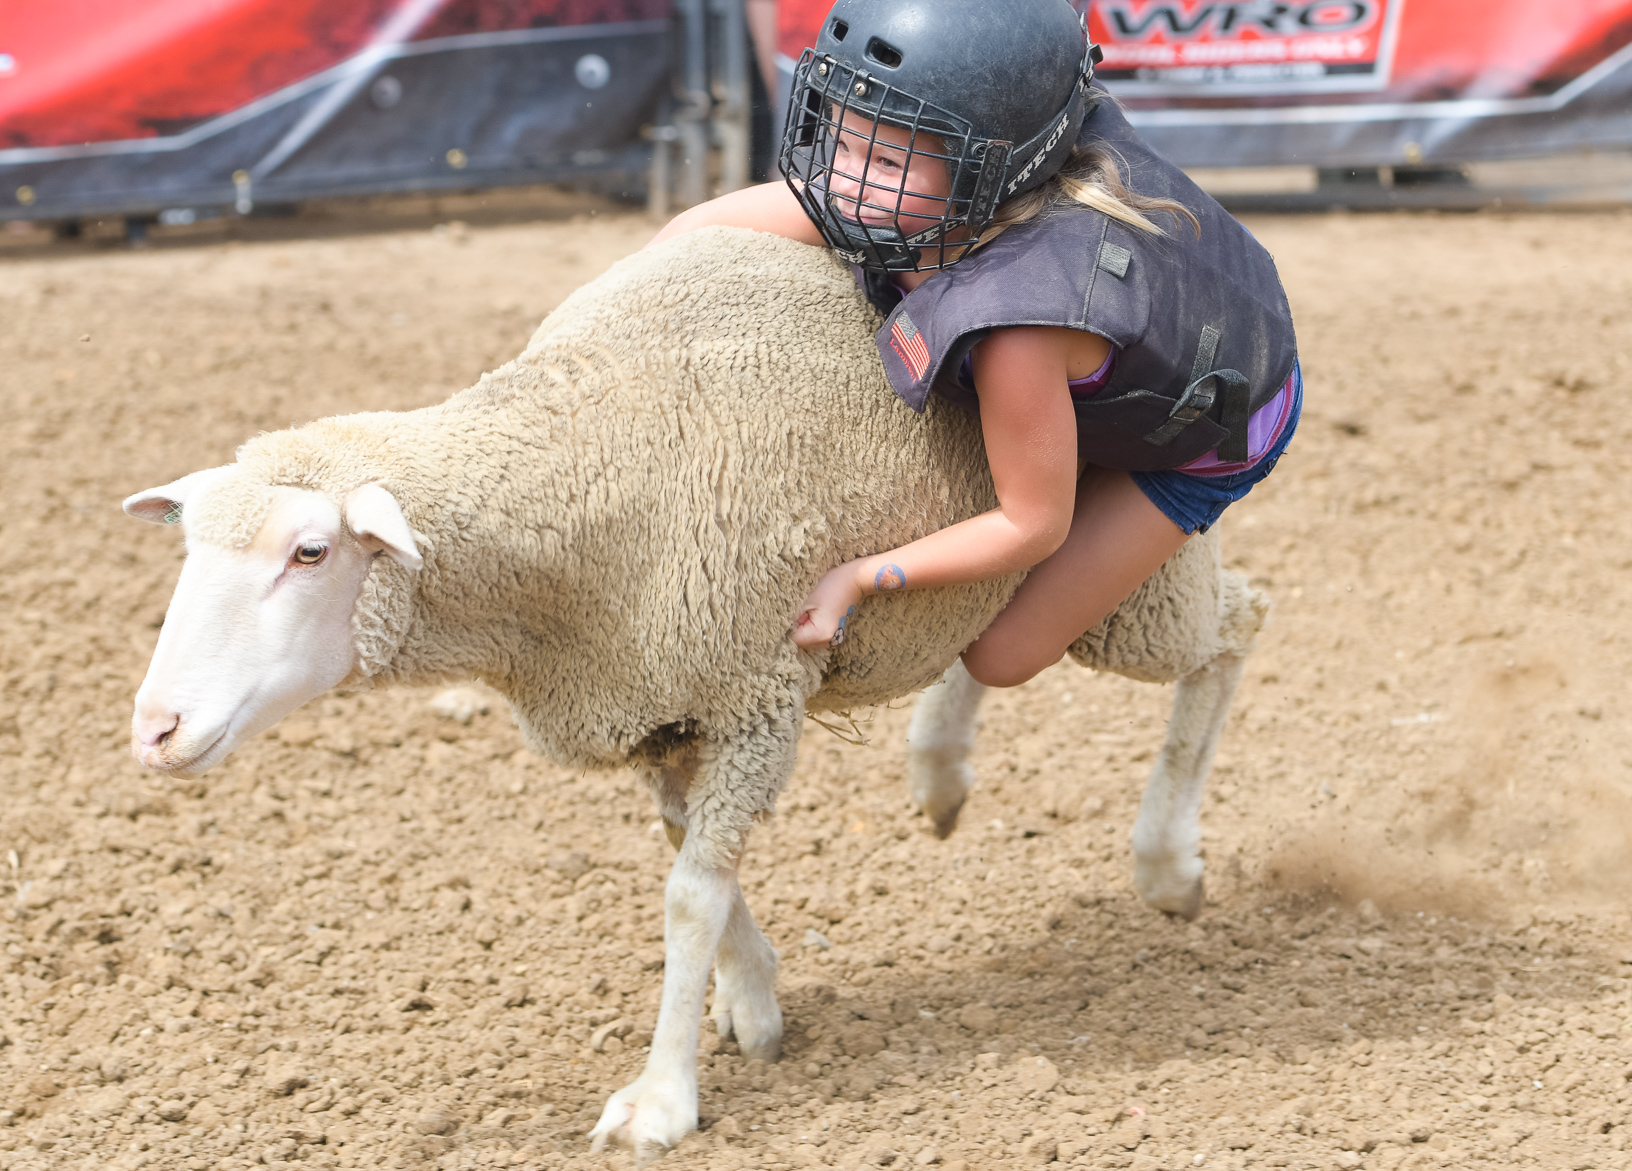 A girl keeps a firm grasp of sheep wool while competing in the Wool Riders Only Mutton Bustin' competition. Photo credit: Joseph L. Murphy/Iowa Soybean Association